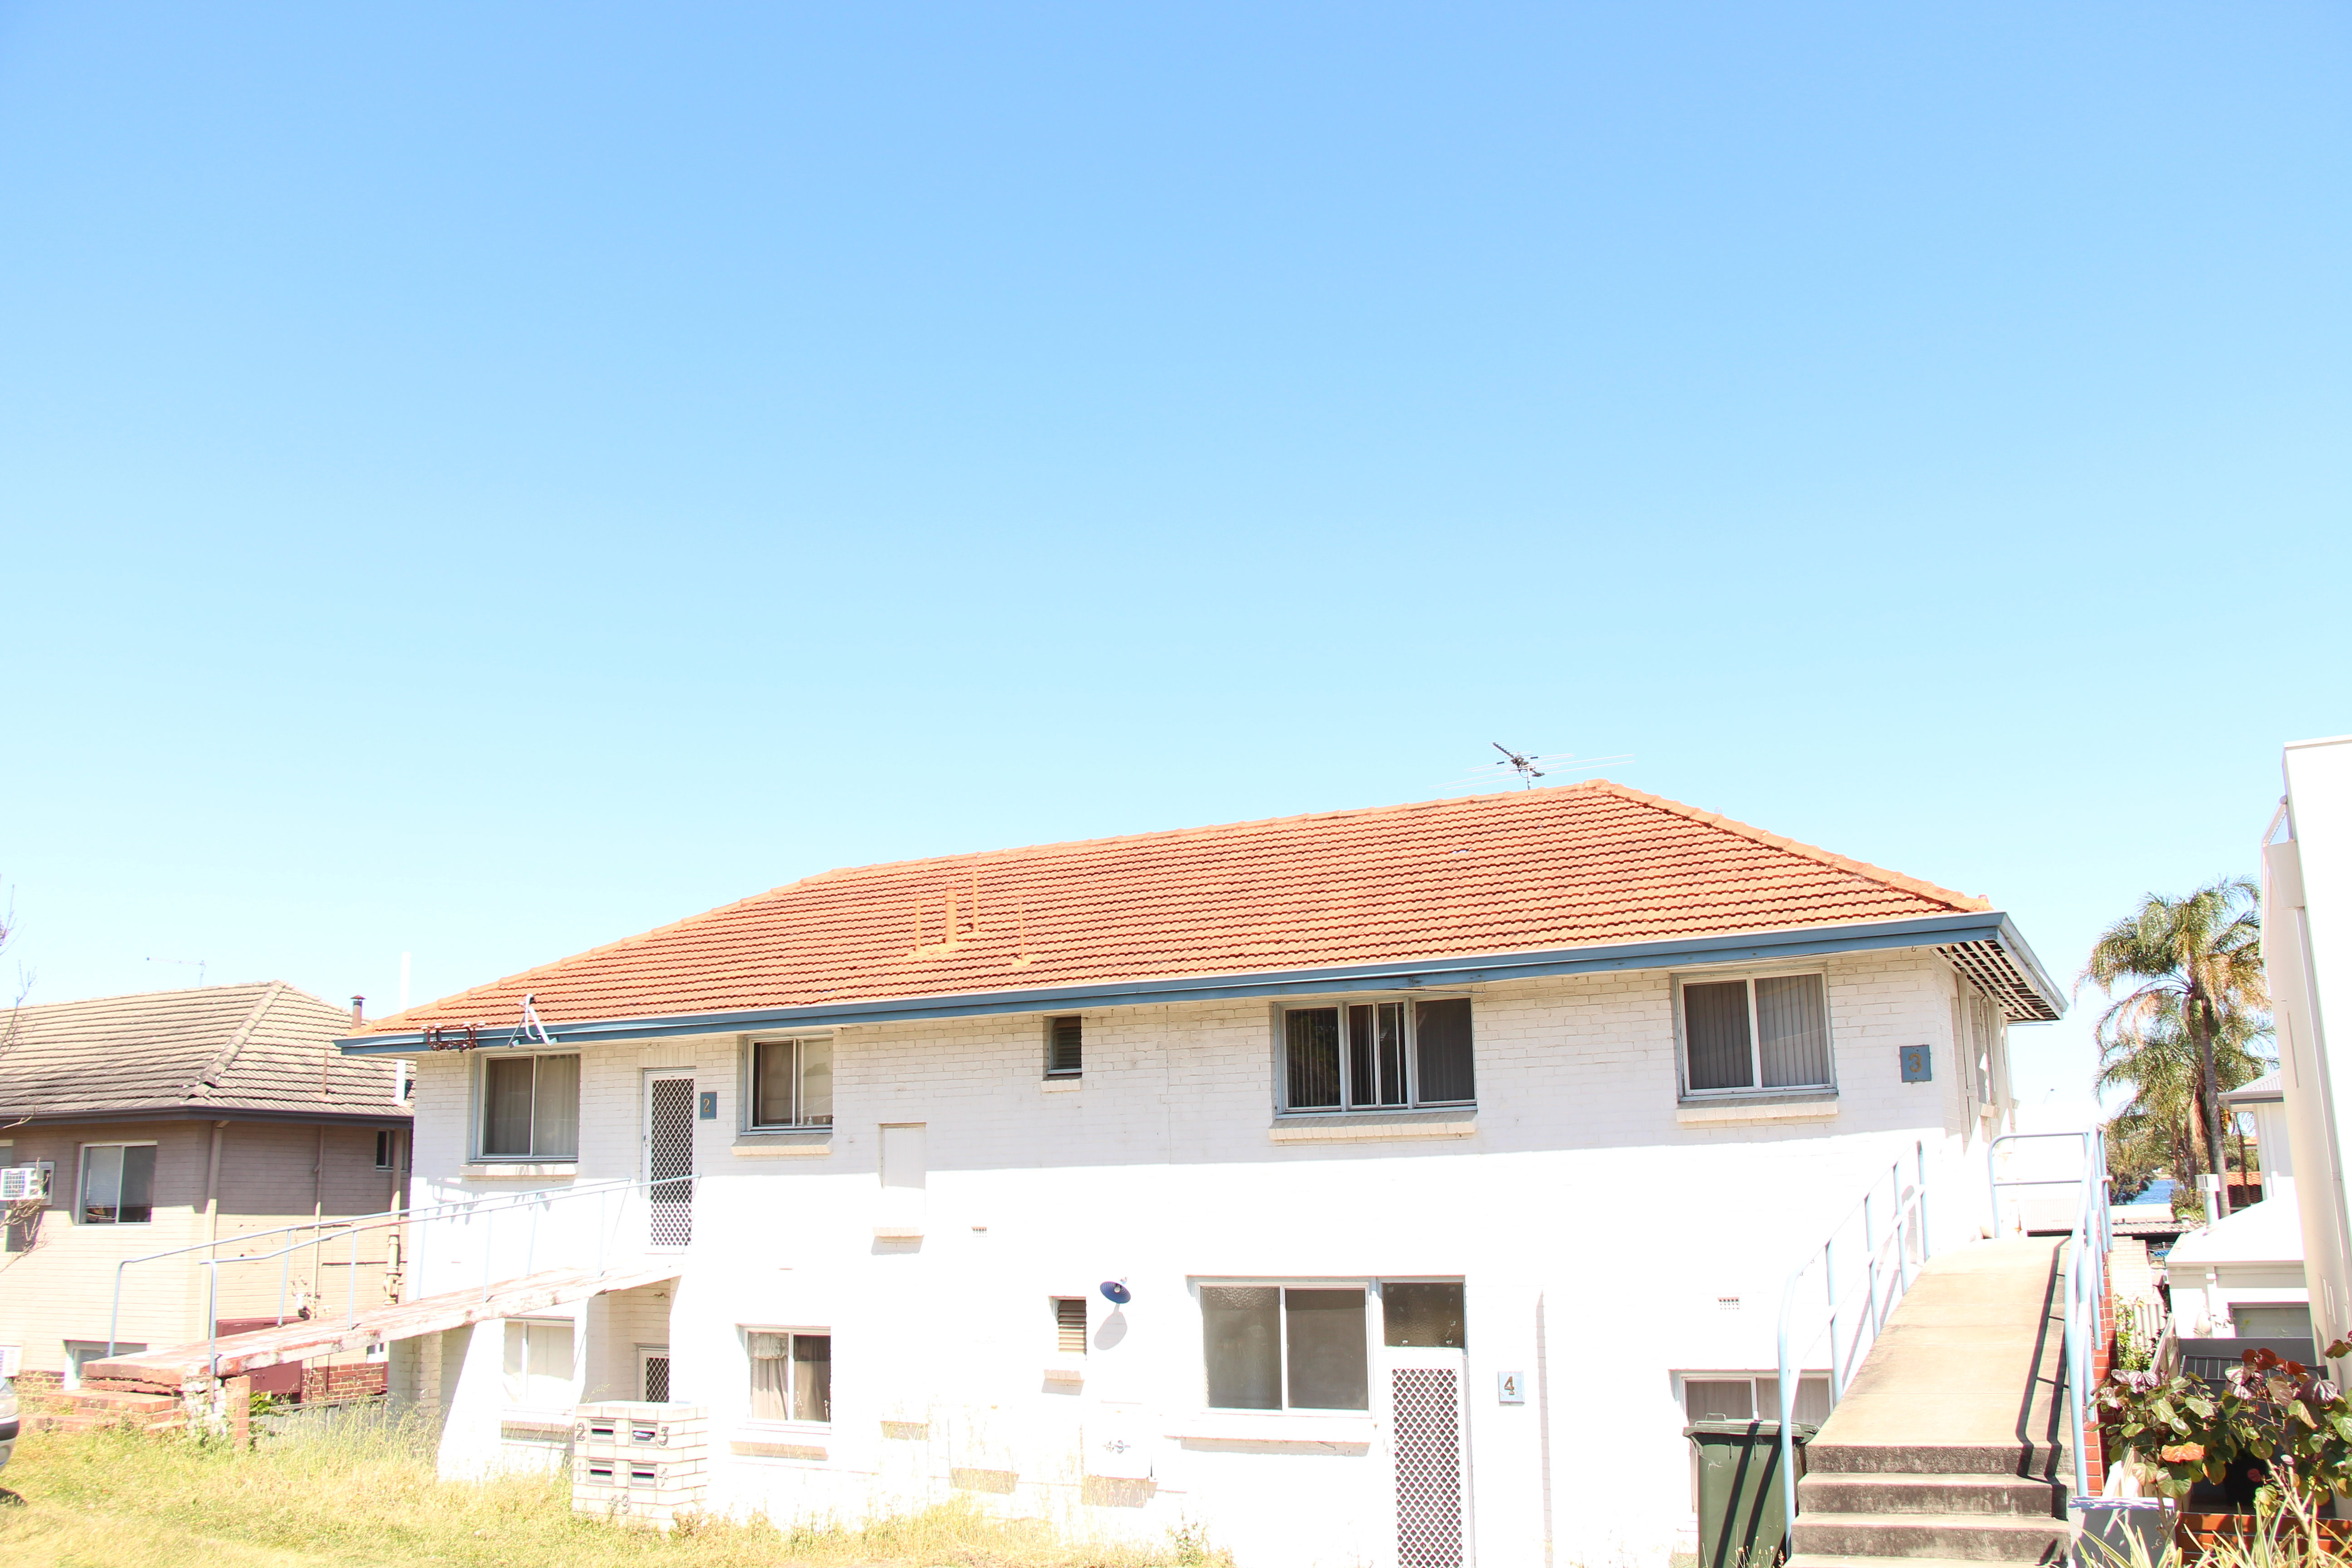 TWO BEDROOM UNIT WITH AIR CONDITIONING!